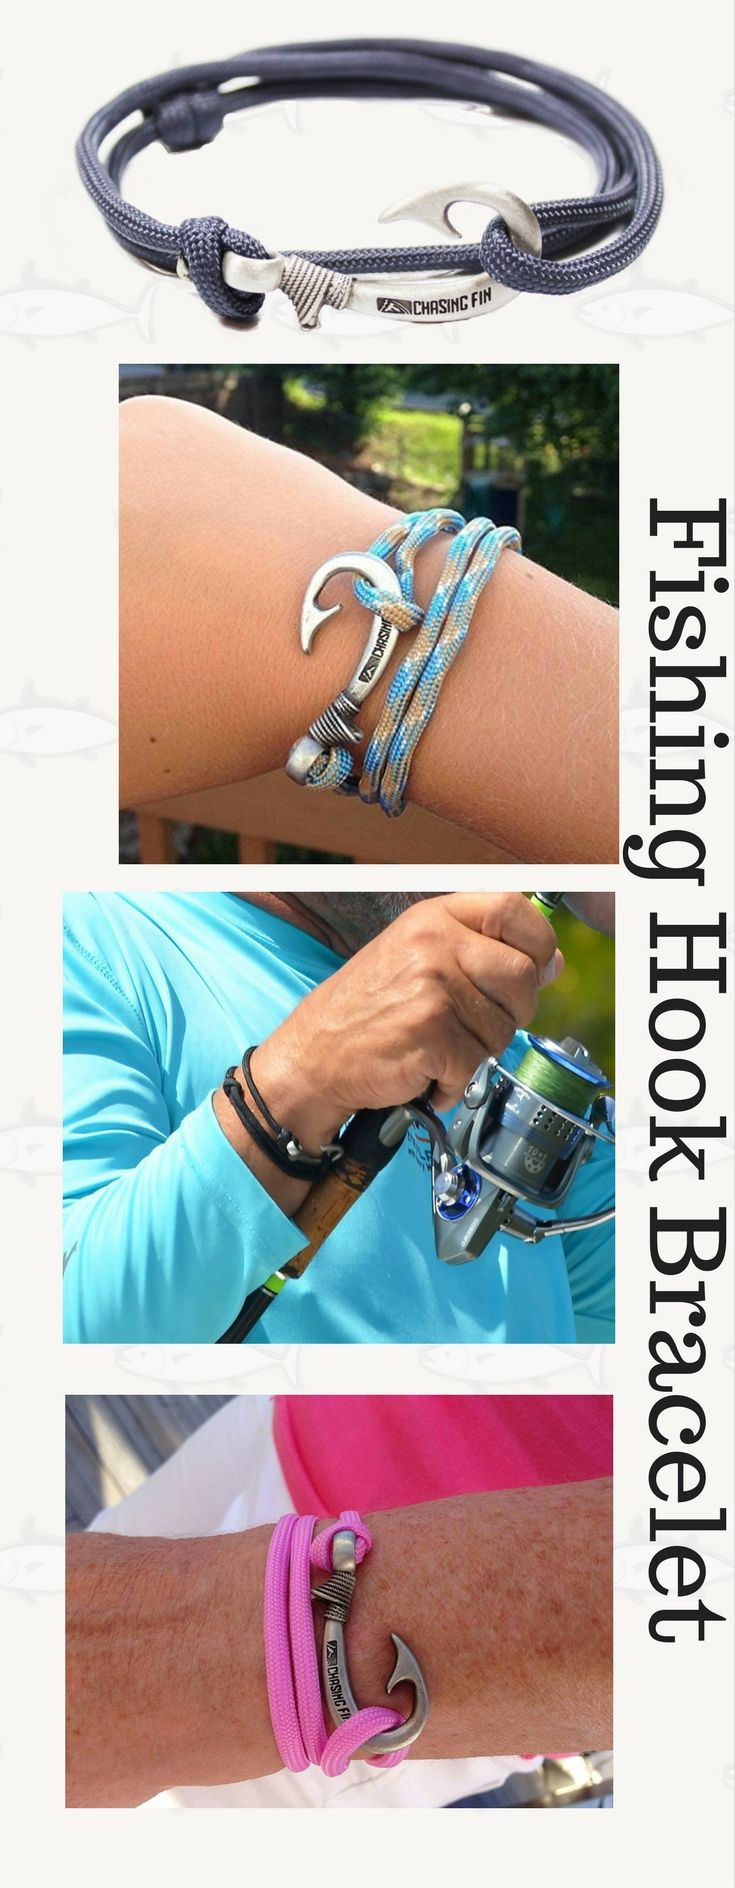 Adjustable Fish Hook Bracelet. Great for fishermen and women! Can be worn as necklace or anklet too. - Bait Cast -and- Fish Reels